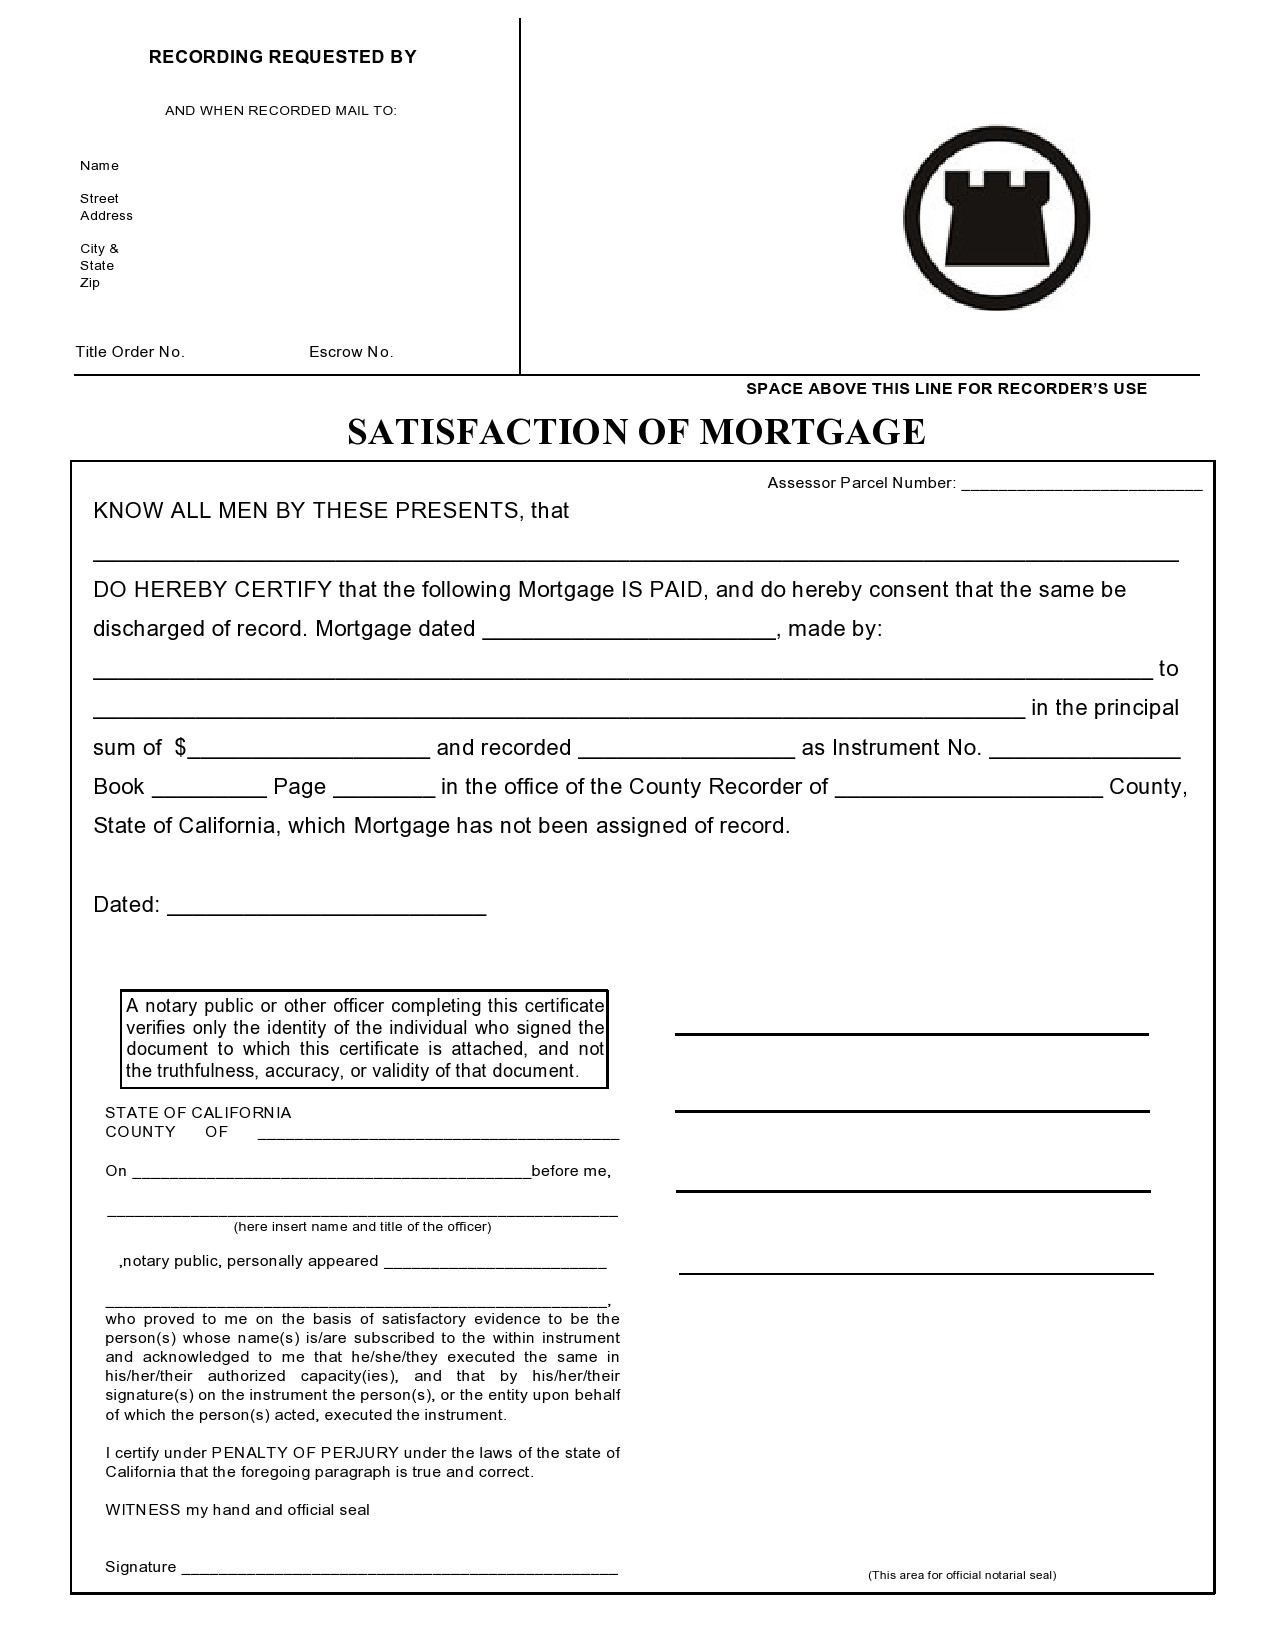 Free satisfaction of mortgage 06